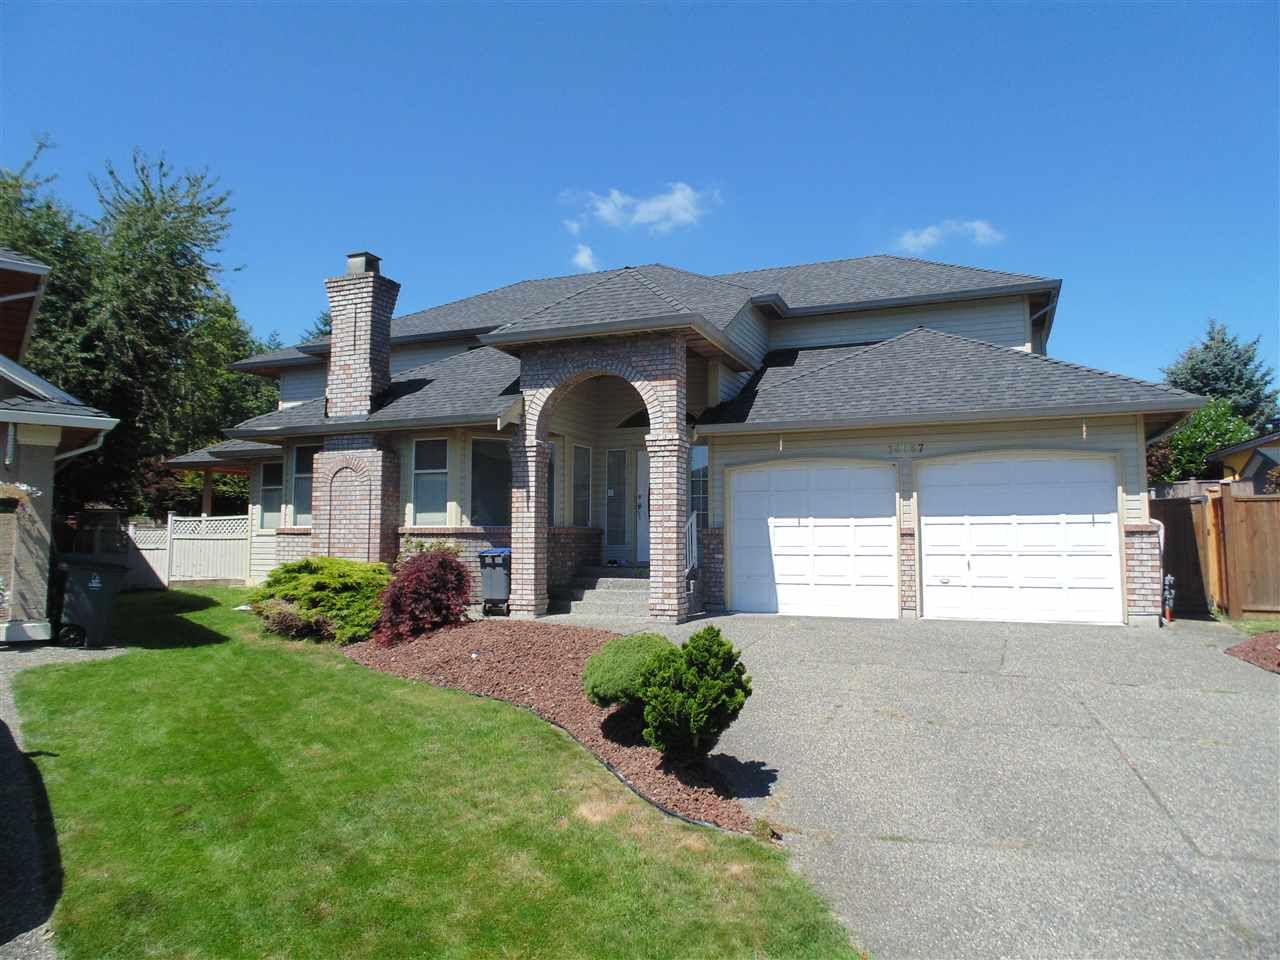 """Main Photo: 14857 82A Avenue in Surrey: Bear Creek Green Timbers House for sale in """"Shaughnessy Estates"""" : MLS®# R2480055"""